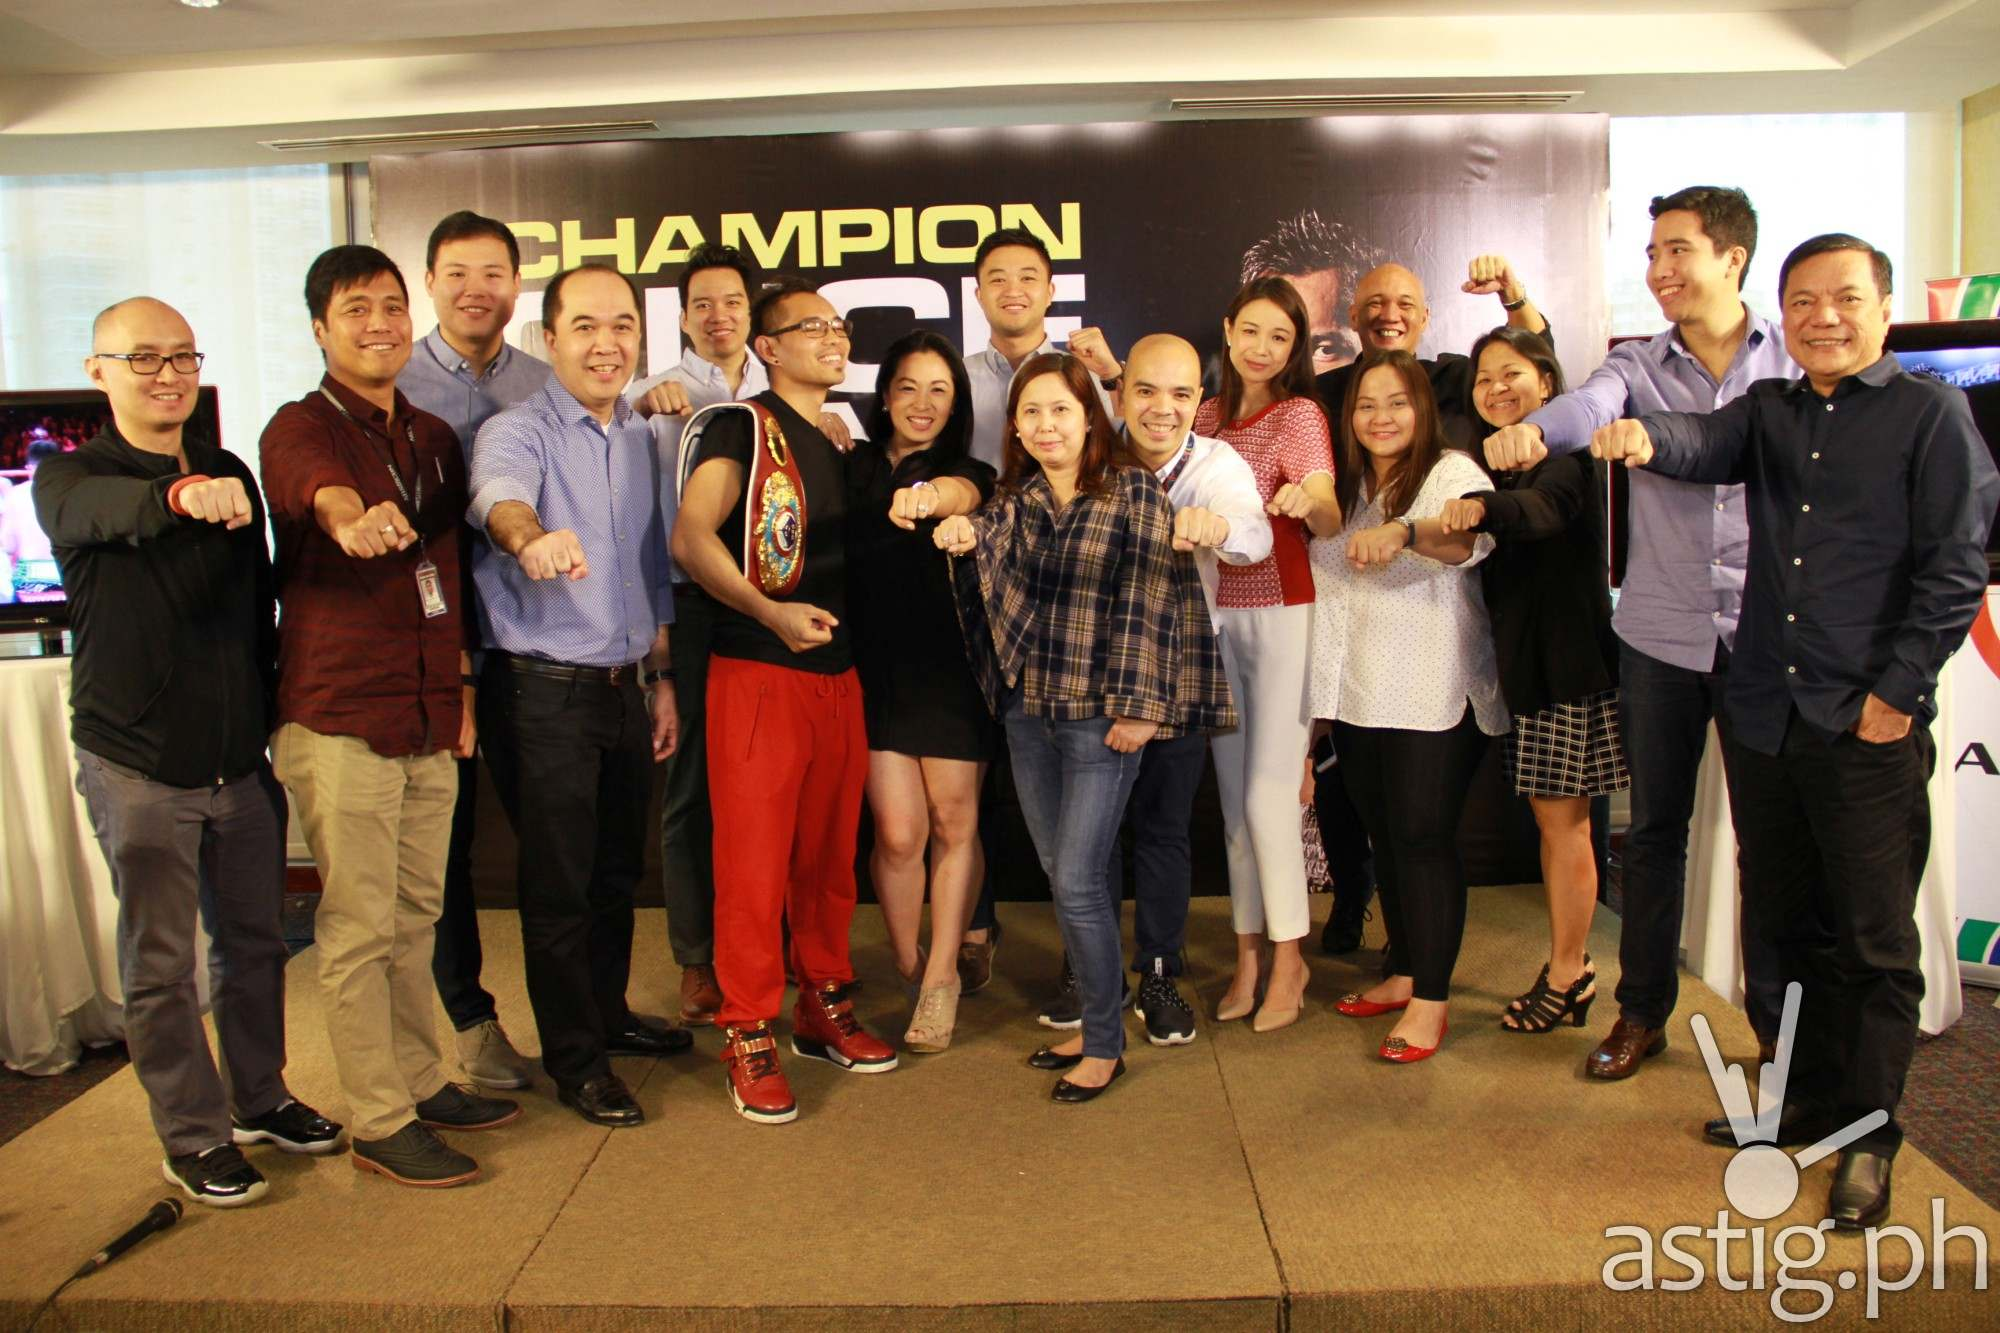 ABS-CBN Sports threw a welcome party for Nonito Donaire